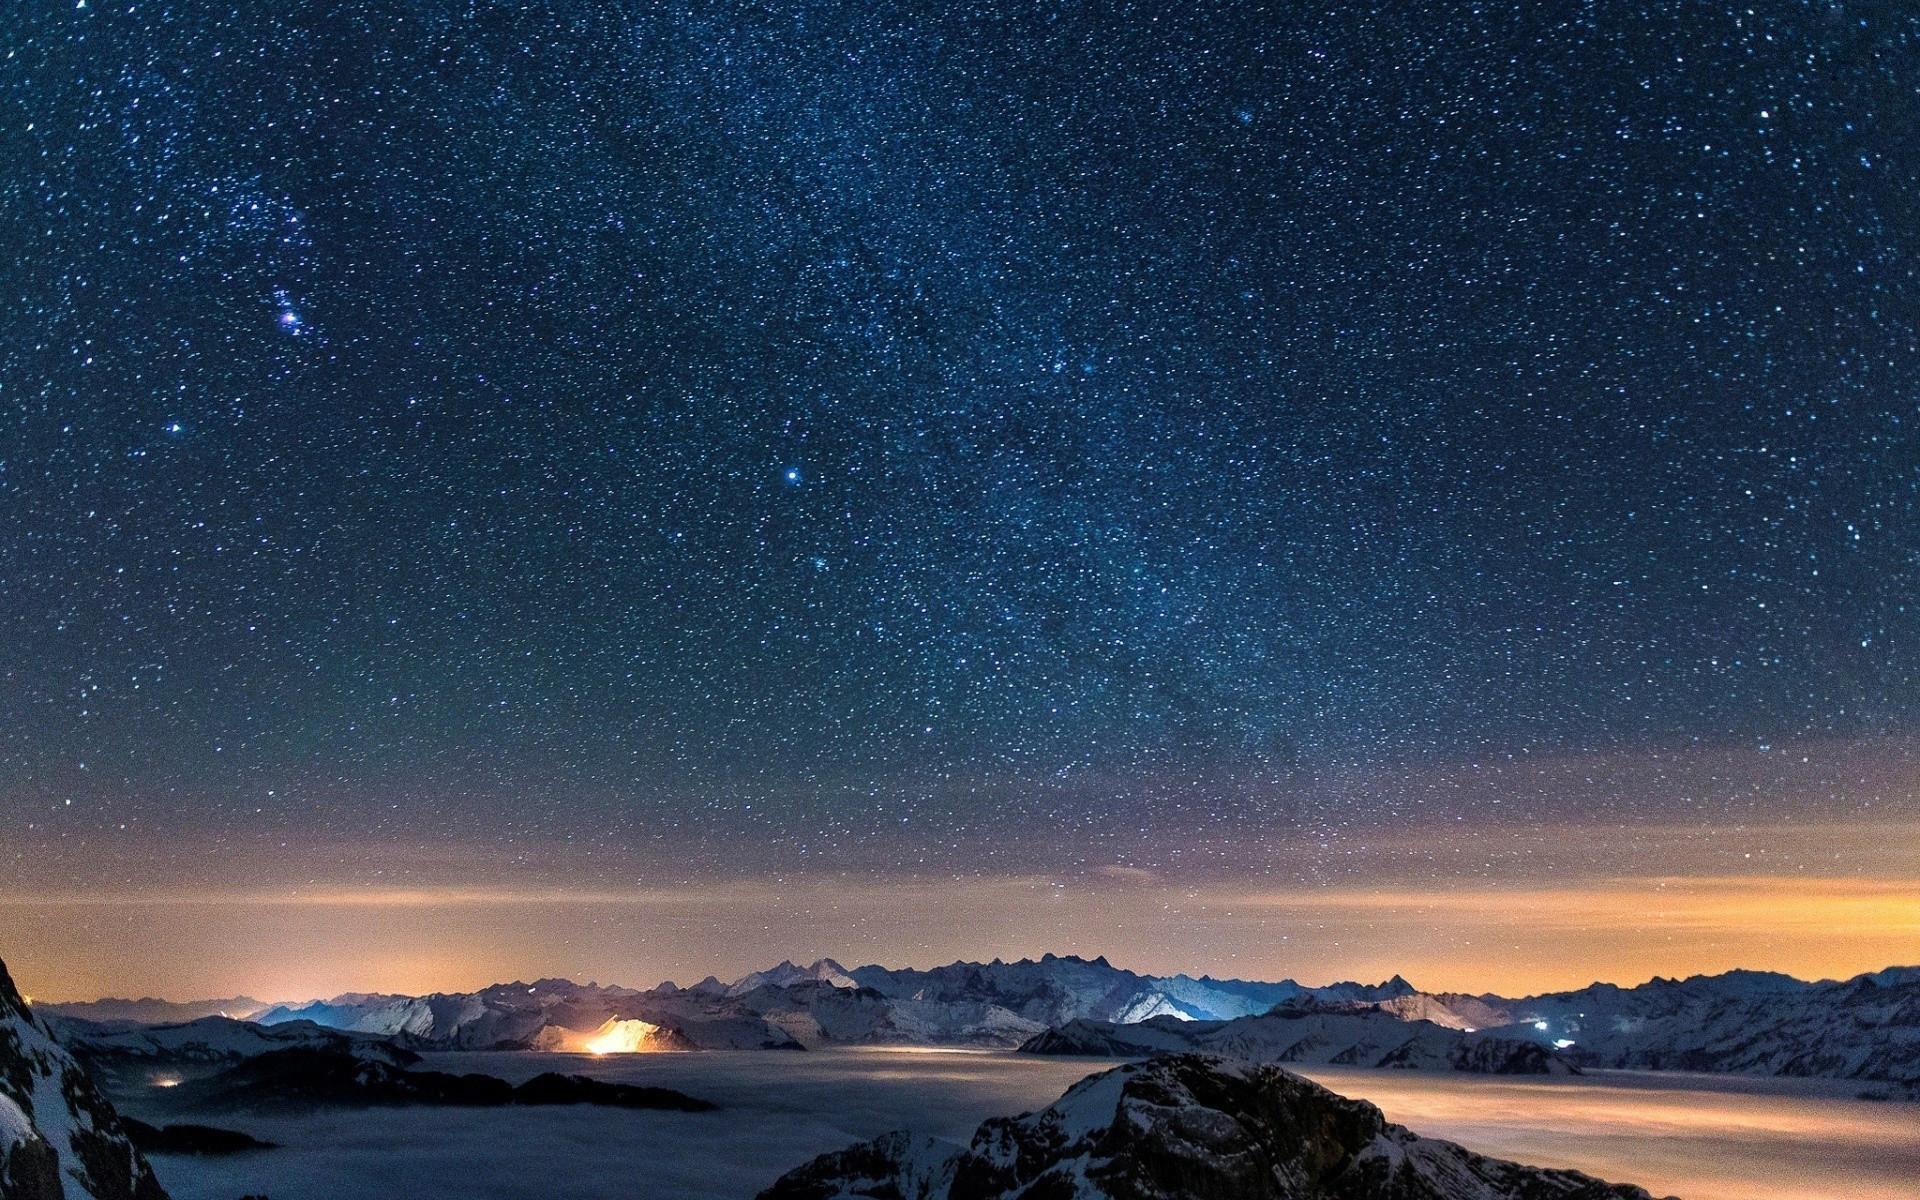 1920x1200 Starry Night Sky Desktop Wallpaper - WallpaperSafari ...